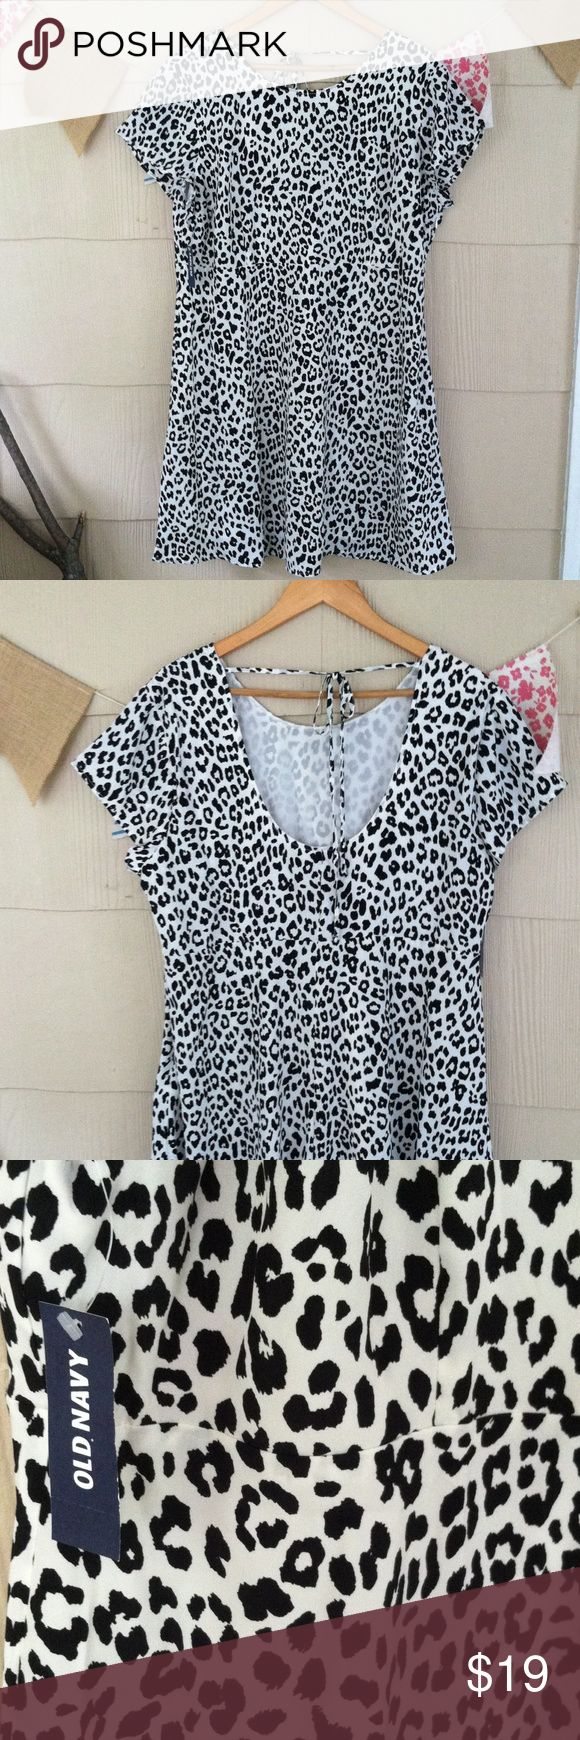 """Oldnavy cheetah dress Never worn and hits above the knee (I'm 5'10"""") Old Navy Dresses Midi"""